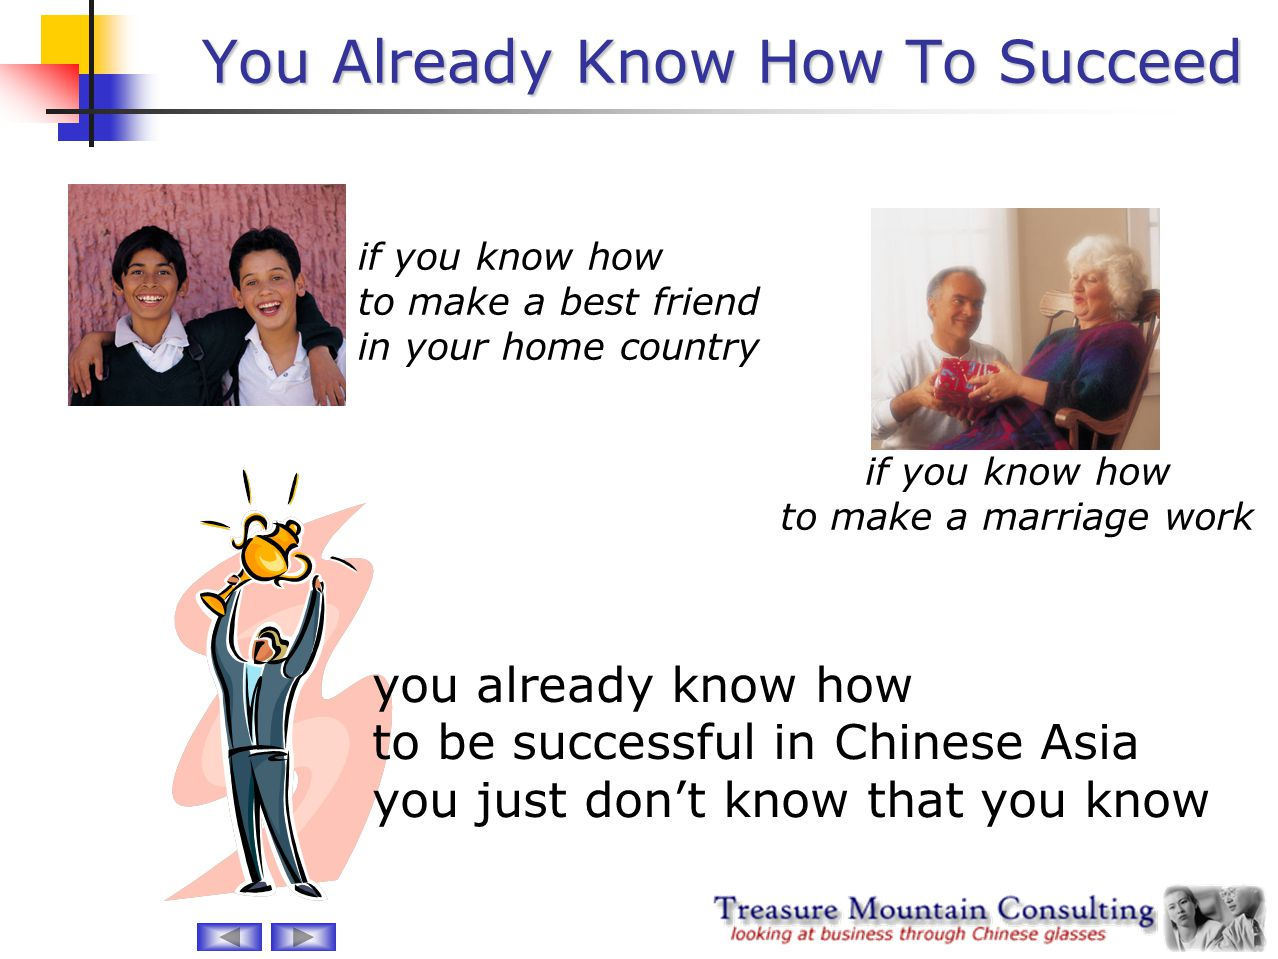 You Already Know How To Succeed